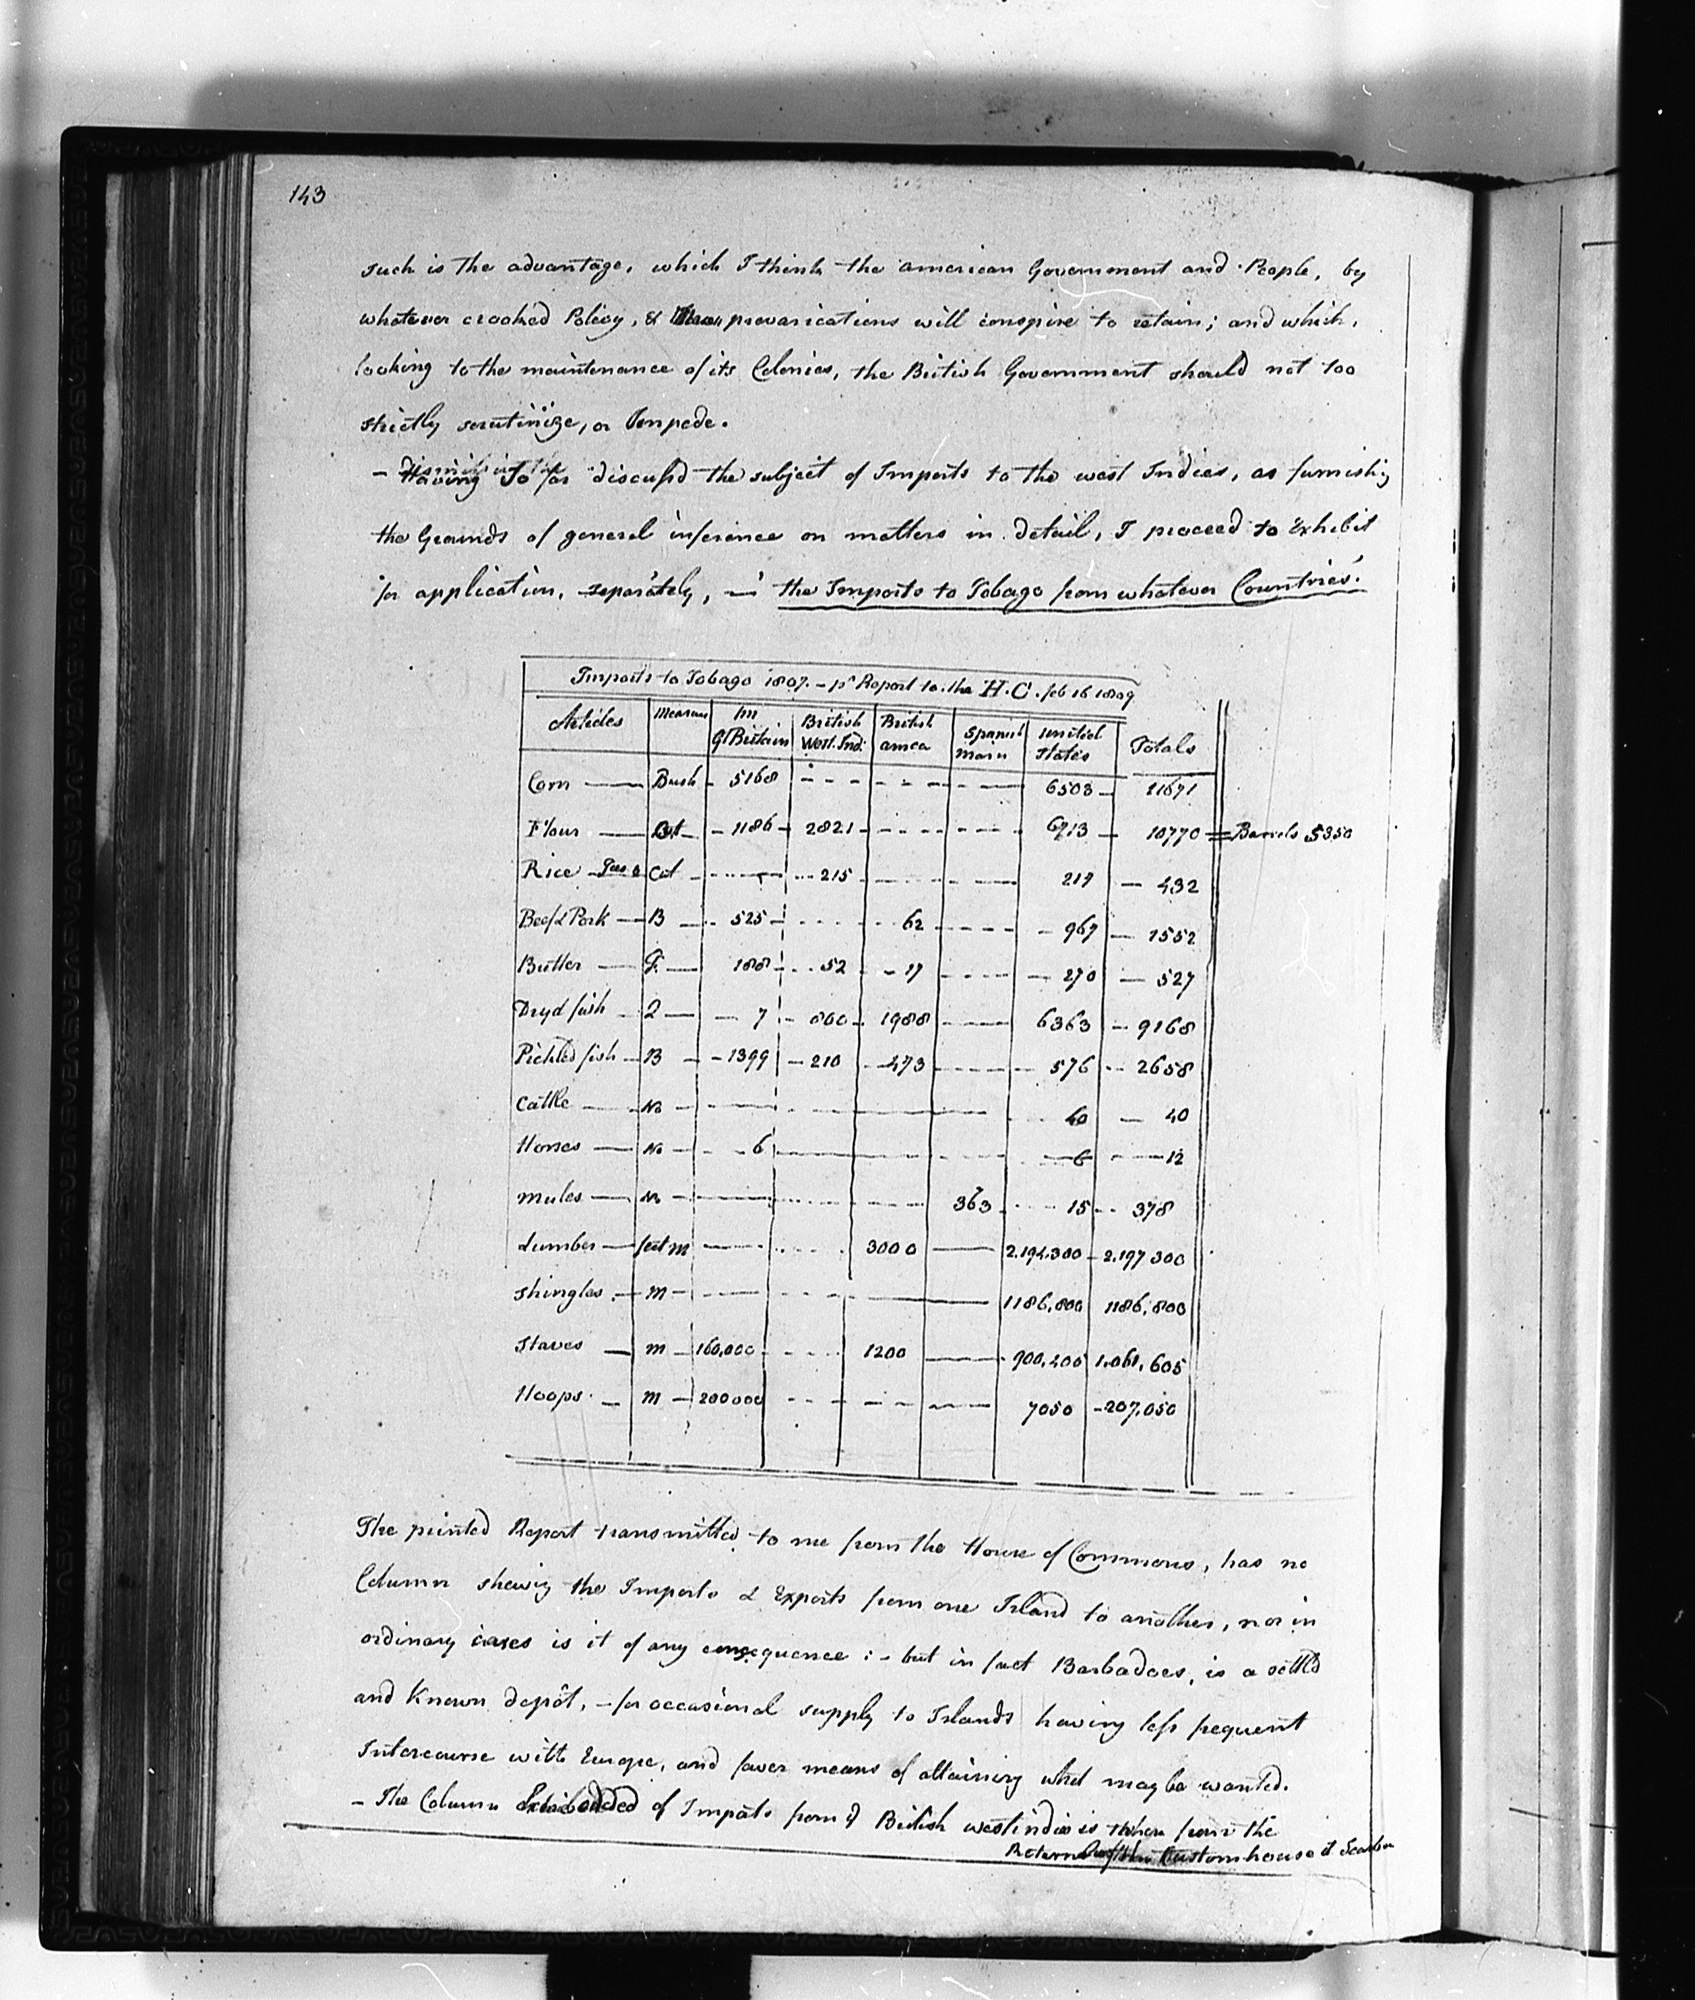 An Historical, statistical and descriptive account of the